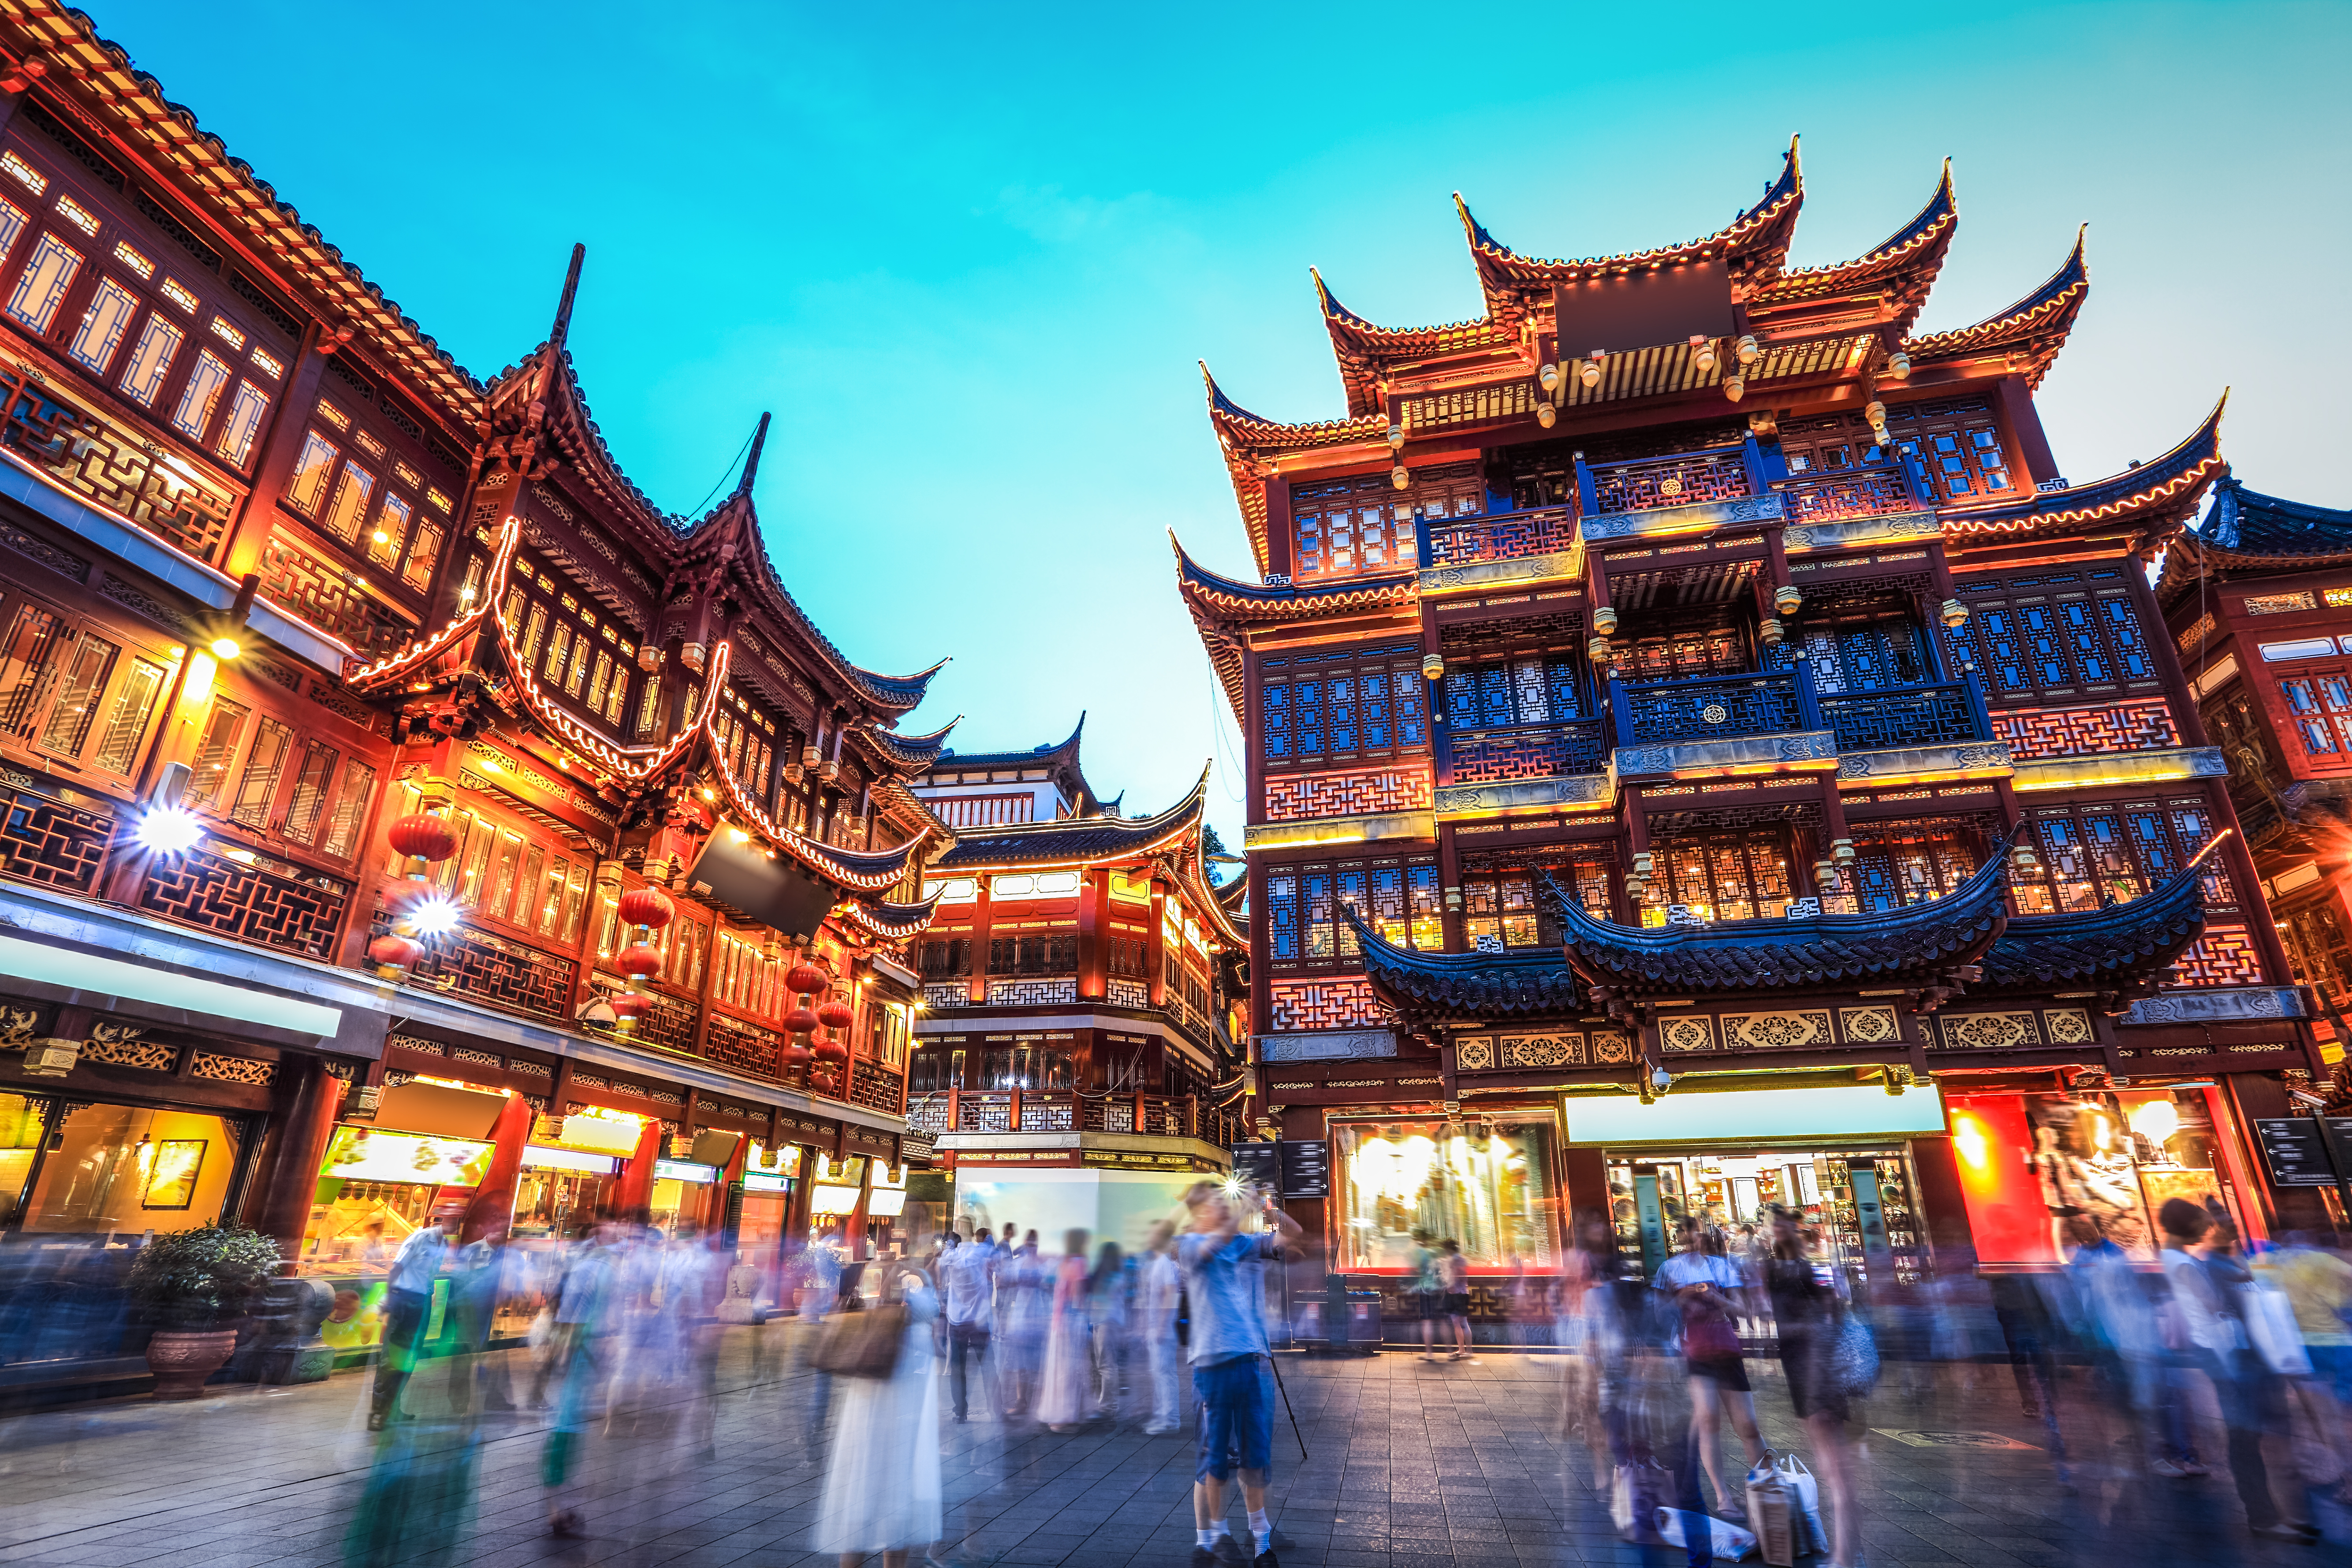 Leisure destinations,activities and places in Asia